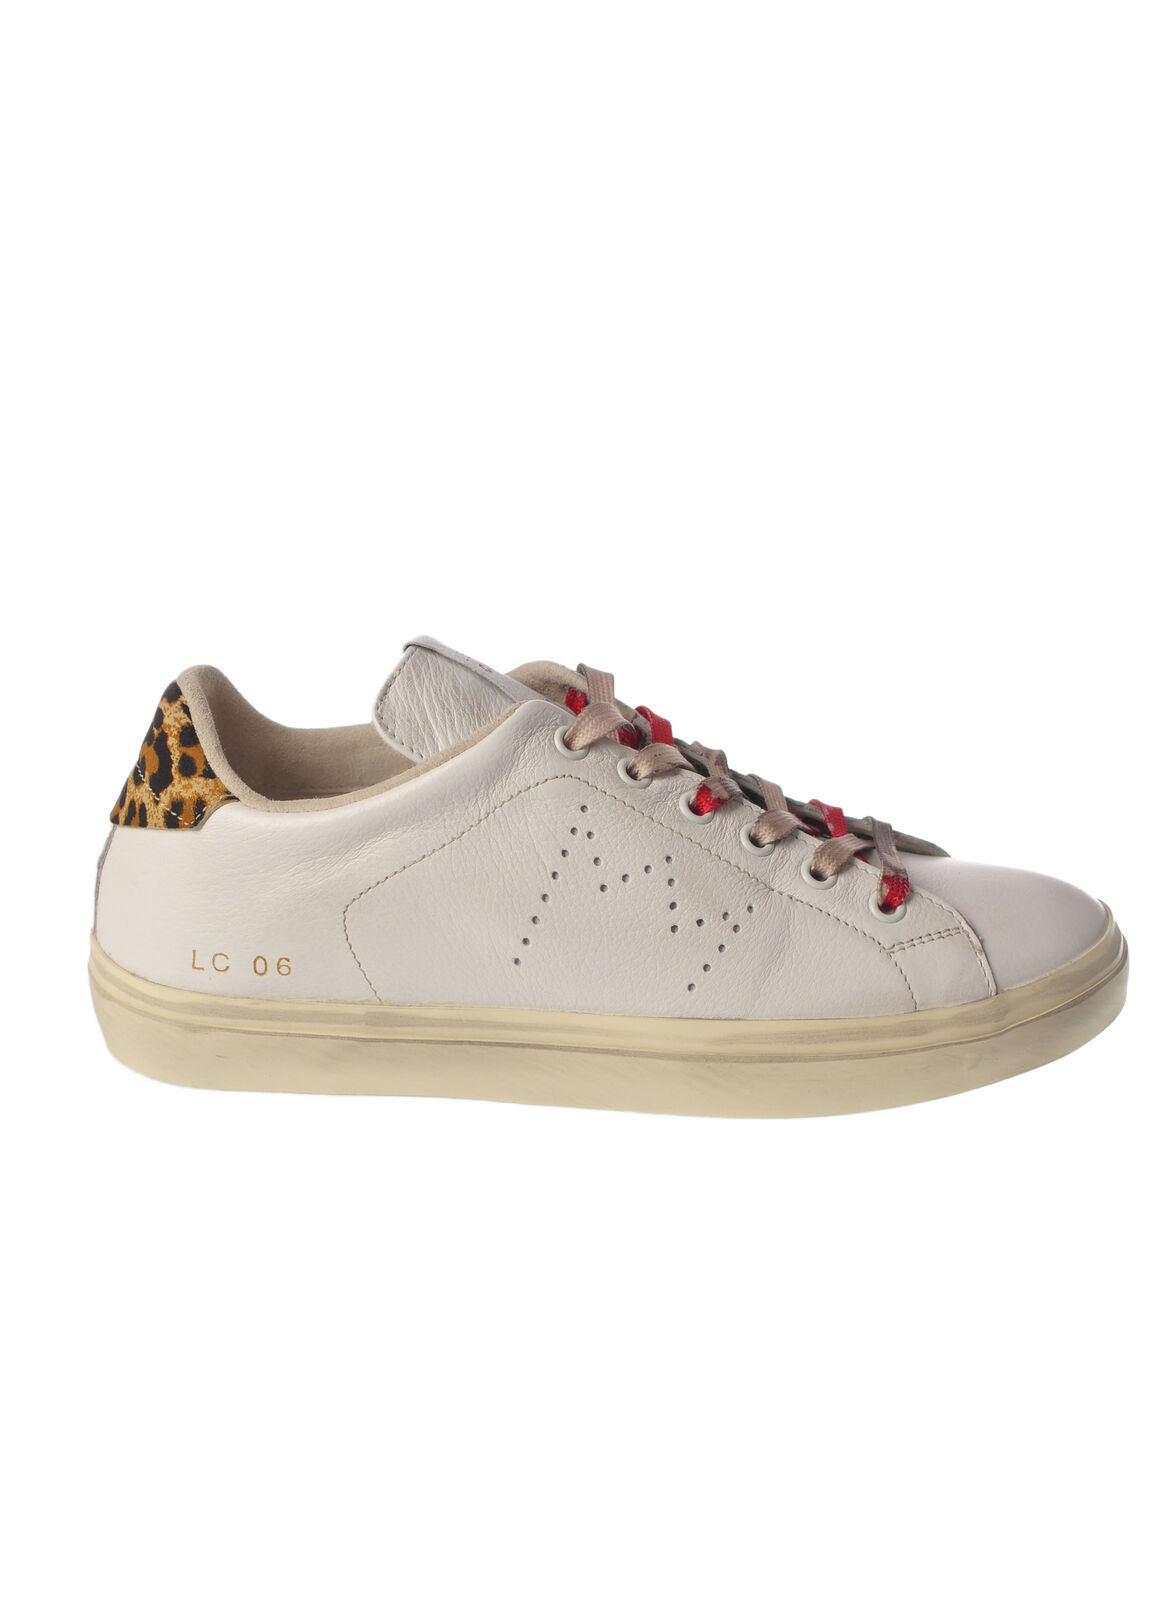 Leather Crown - shoes-Sneakers low - Woman - White - 4994008C190819